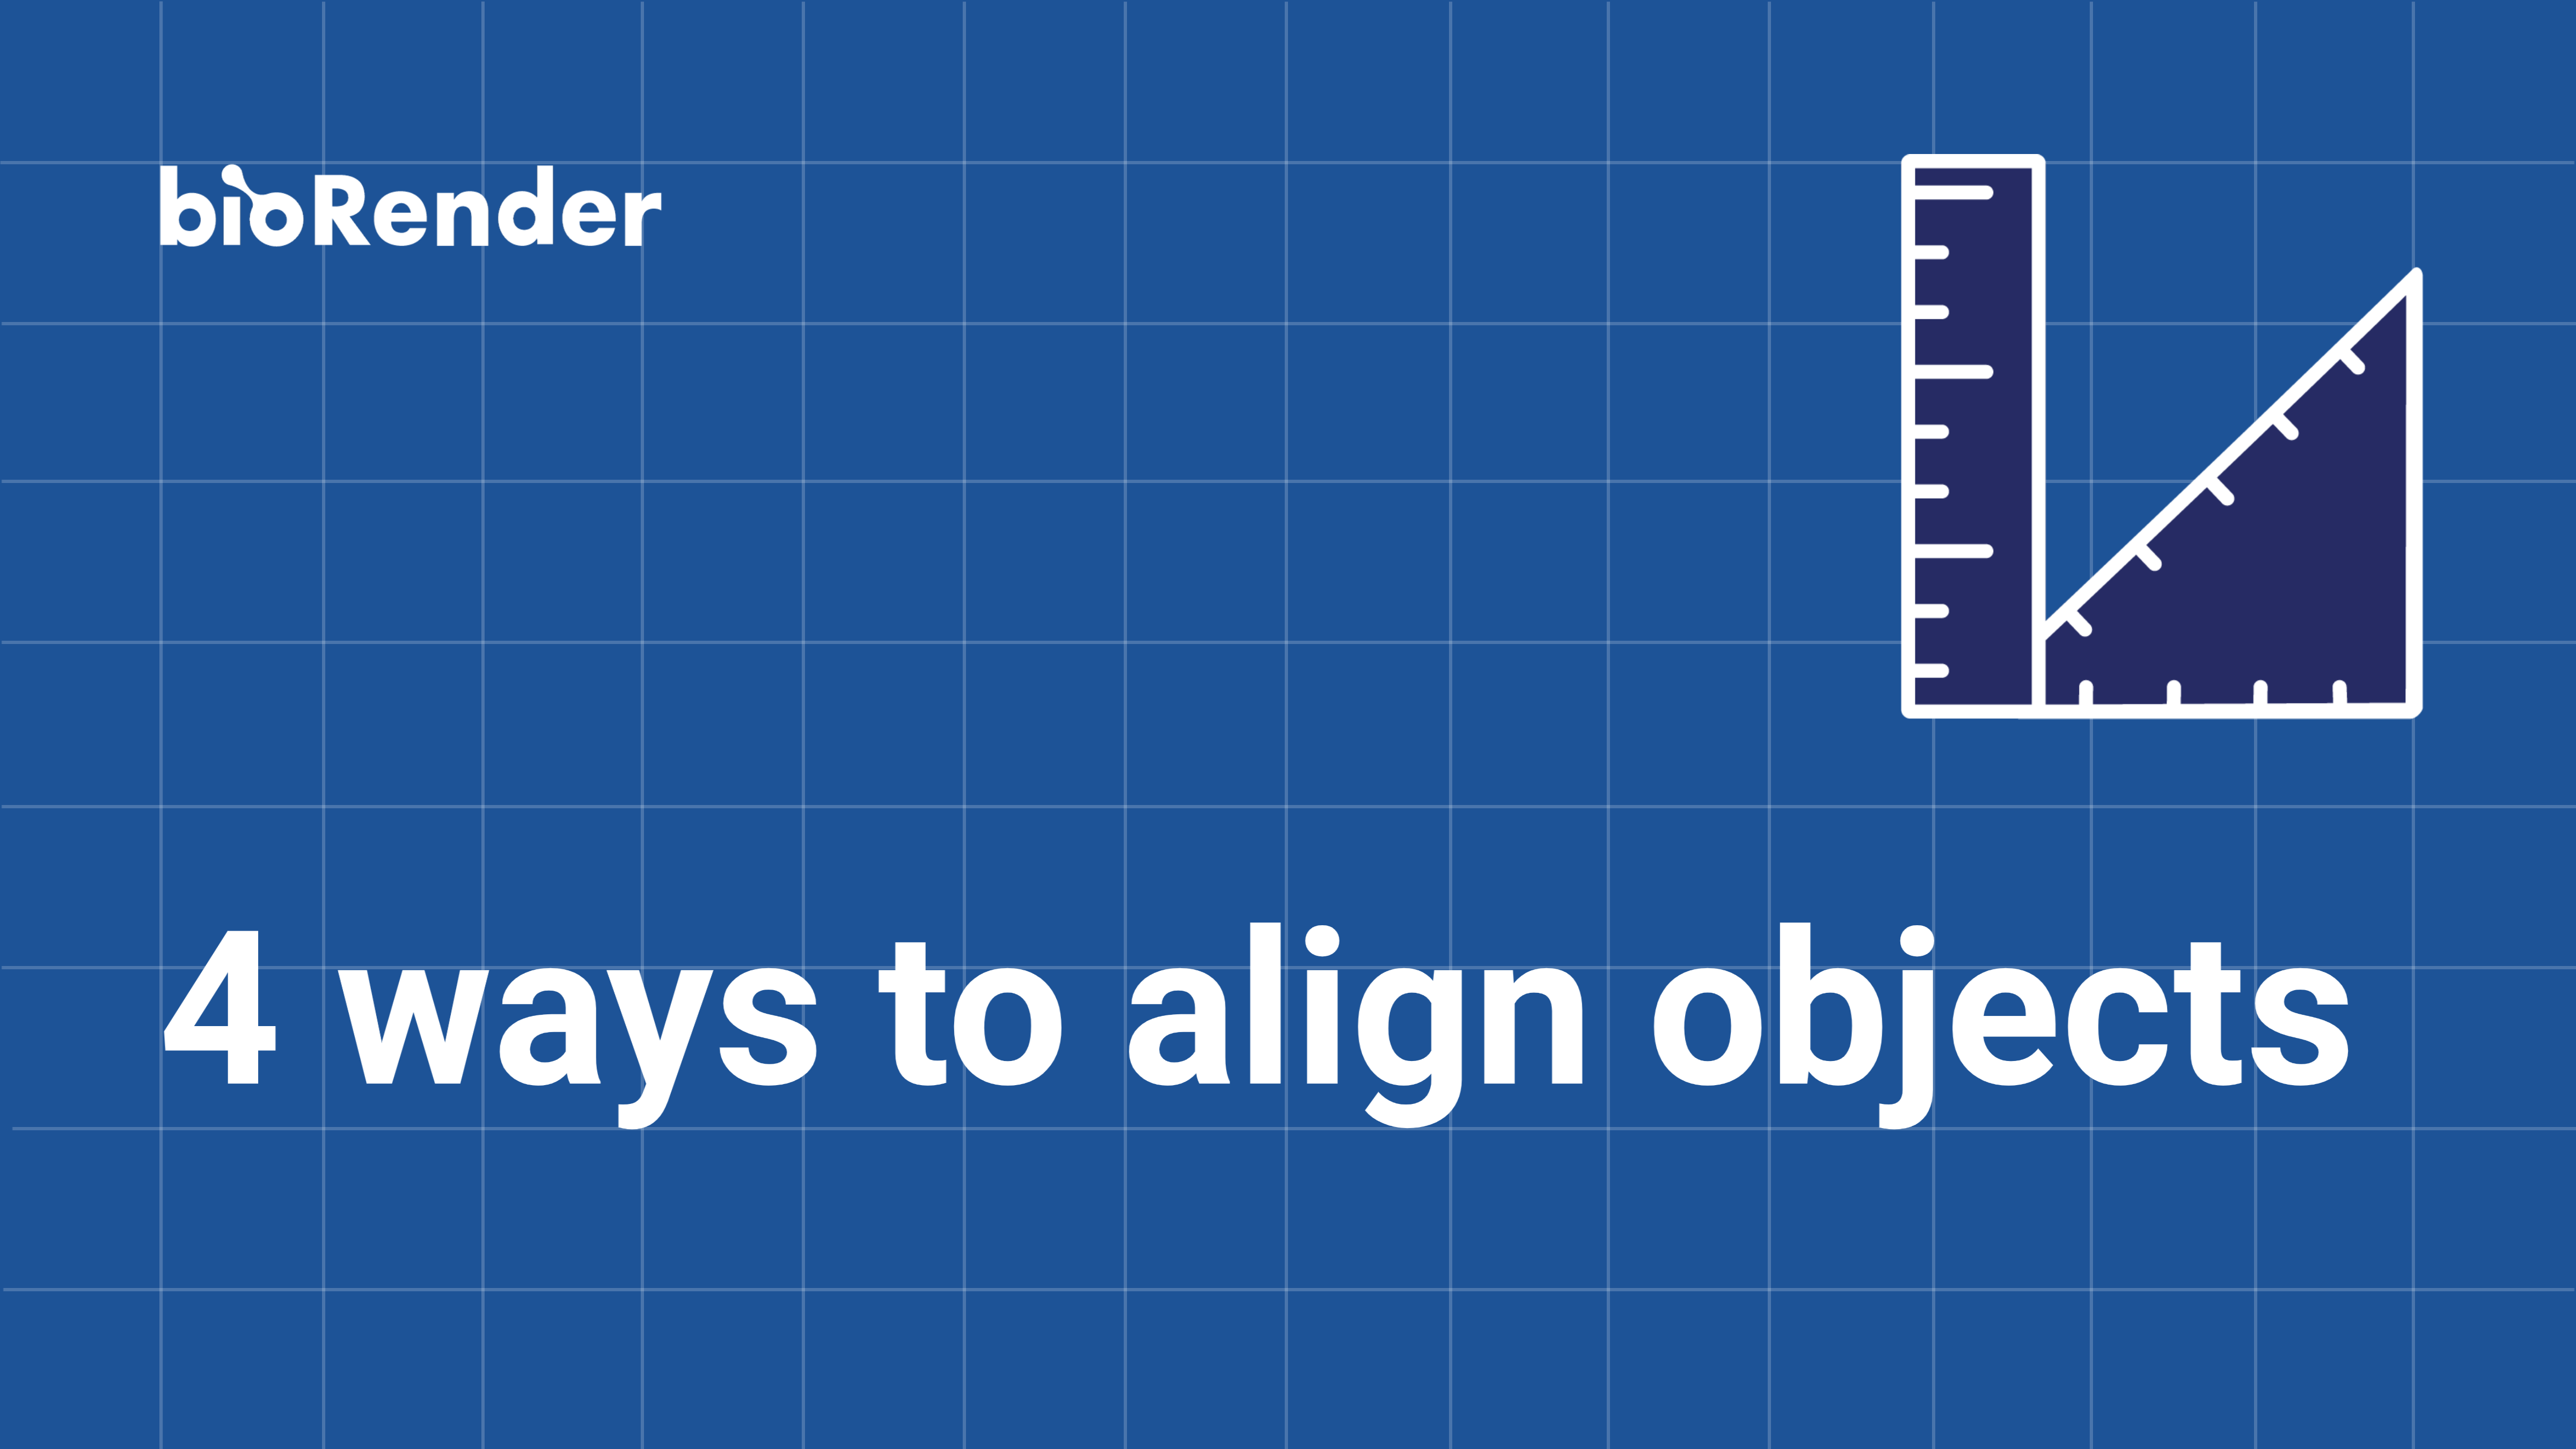 4 ways to align objects